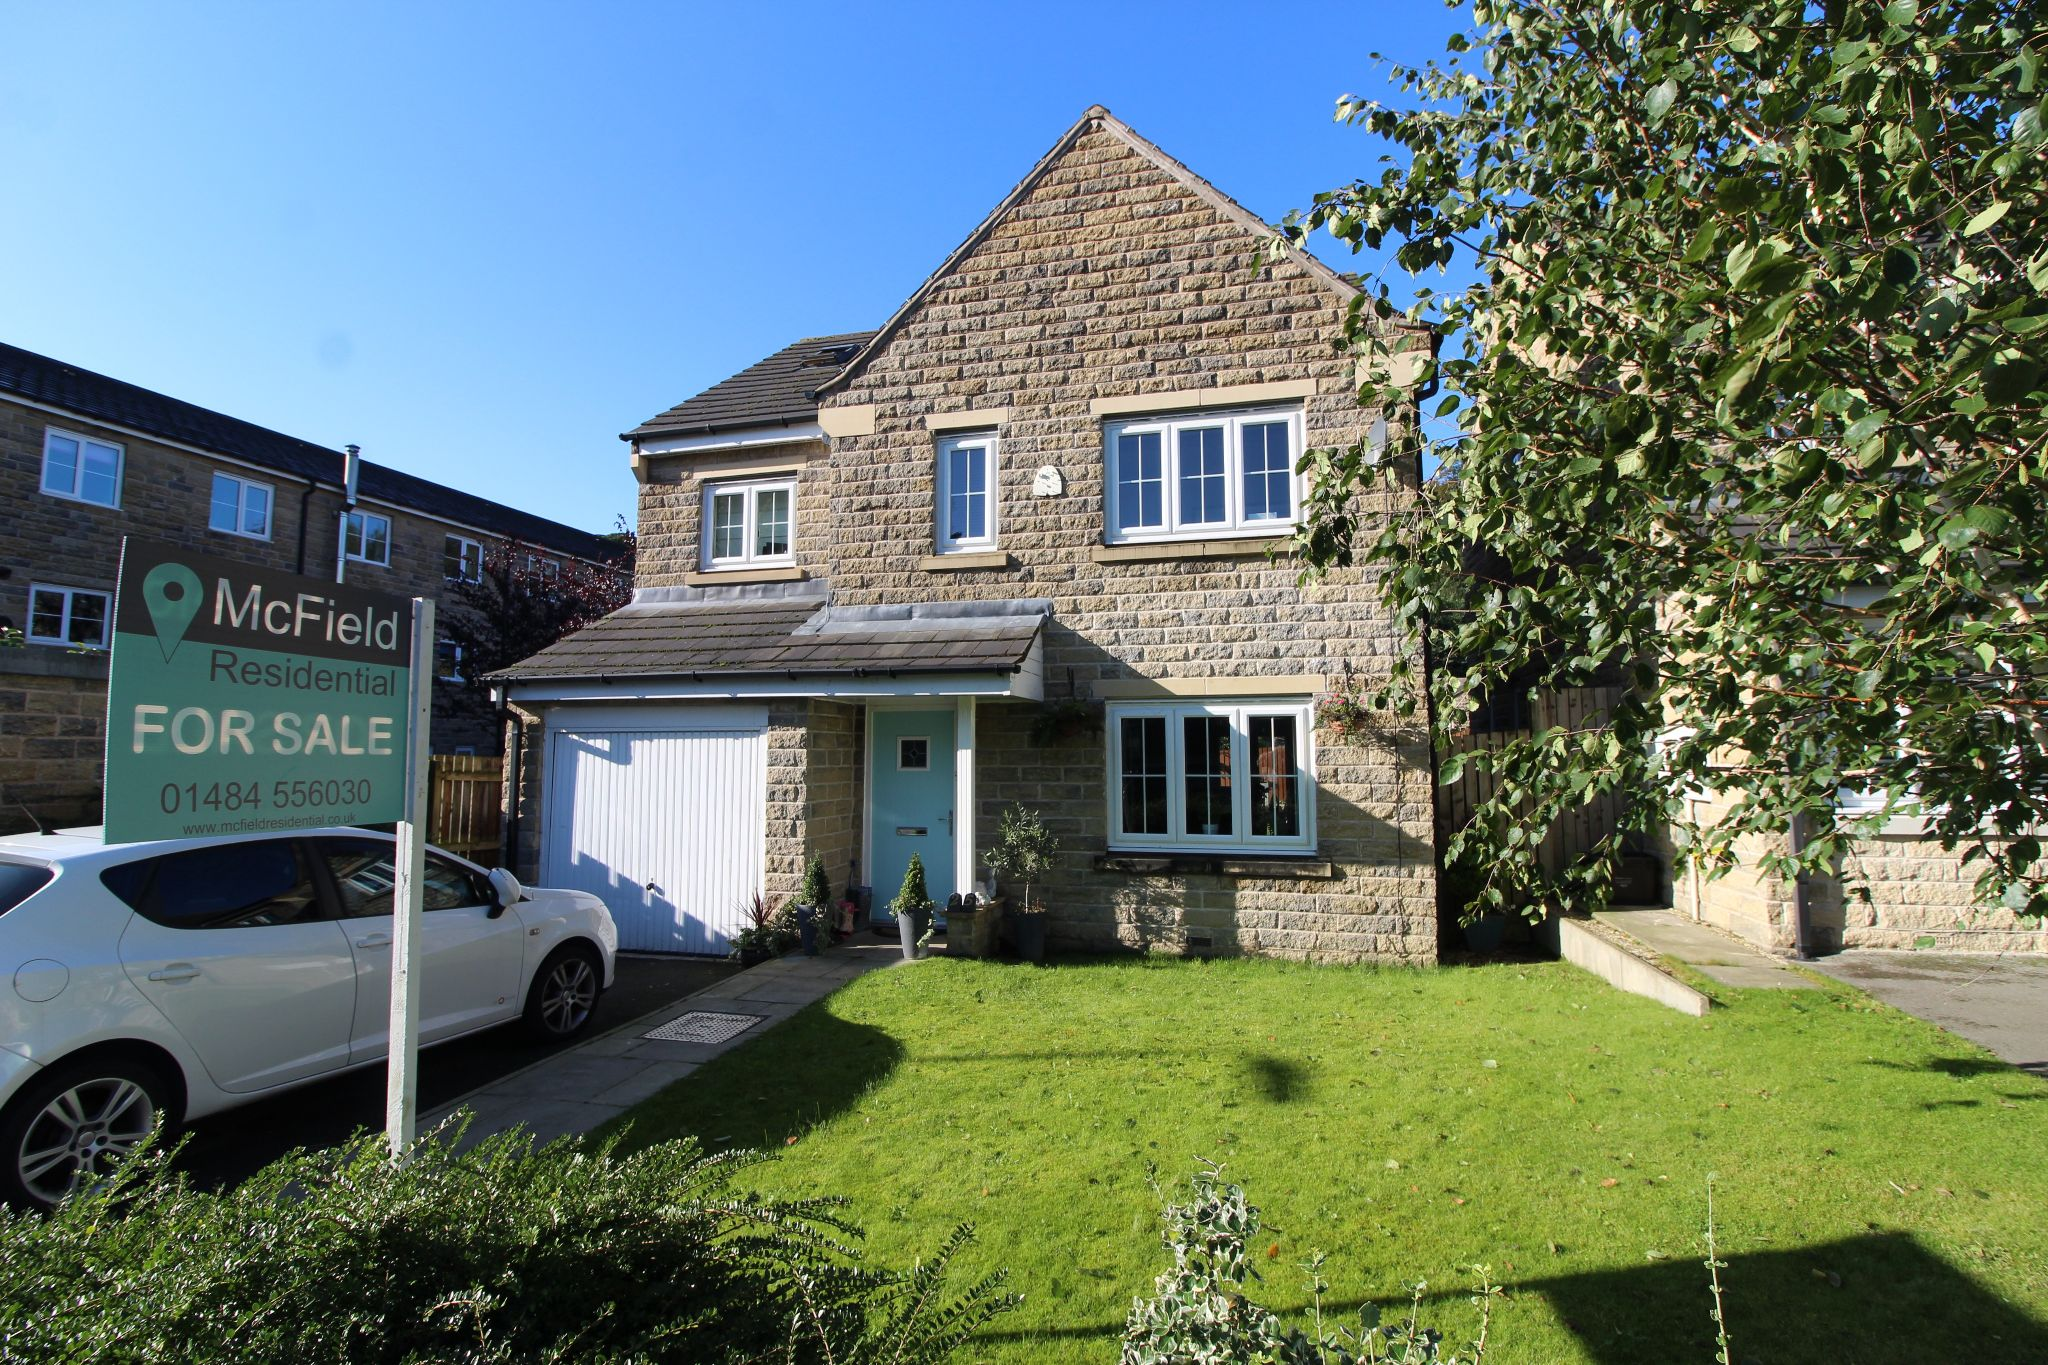 5 bedroom detached house SSTC in Halifax - Front aspect